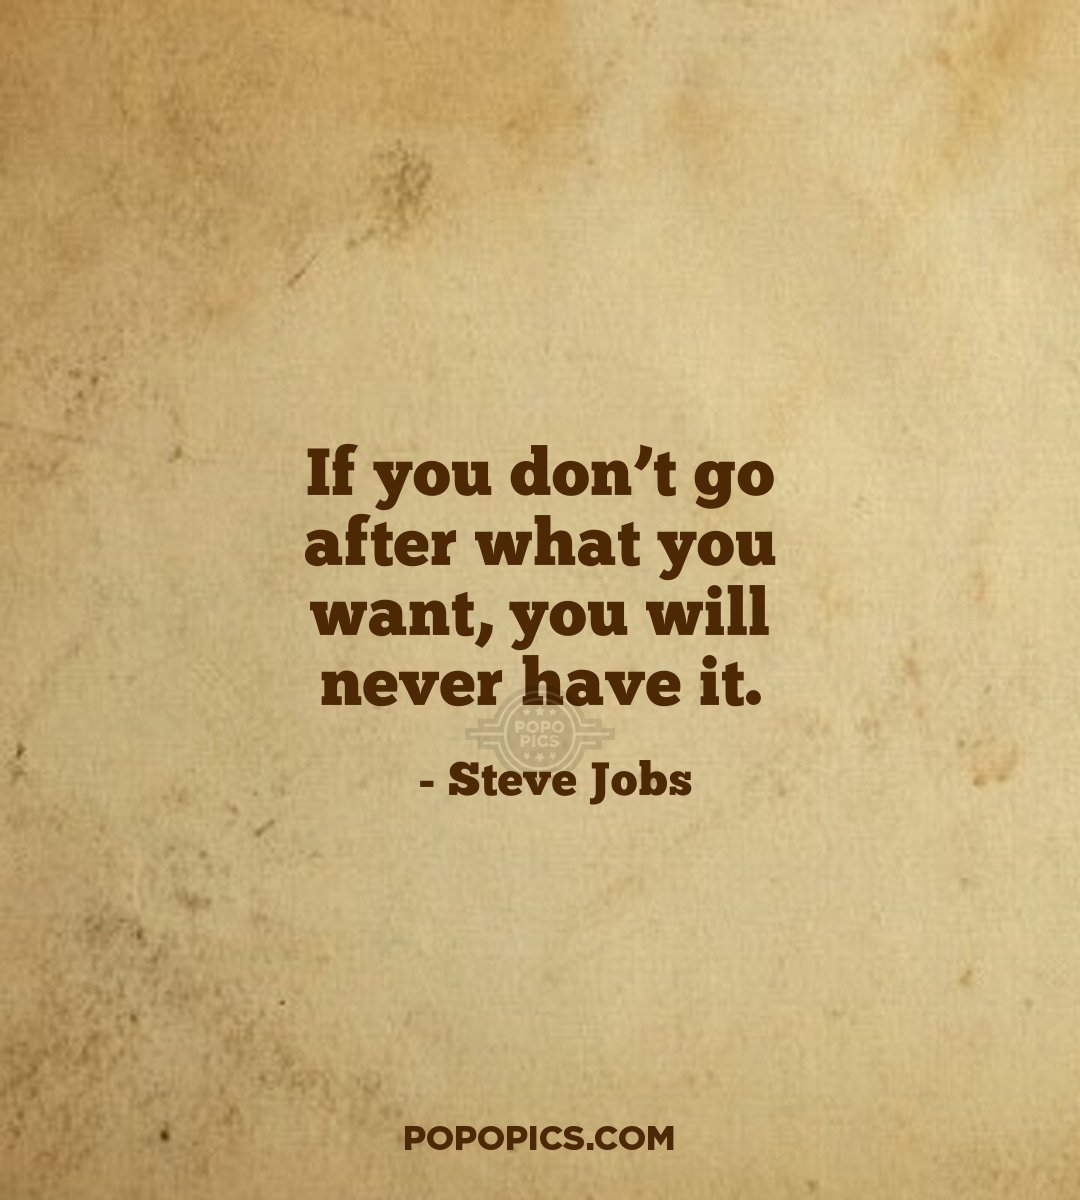 Steve Jobs Quotes Hd Wallpapers: If You Don't Go After What You Want, You Will...